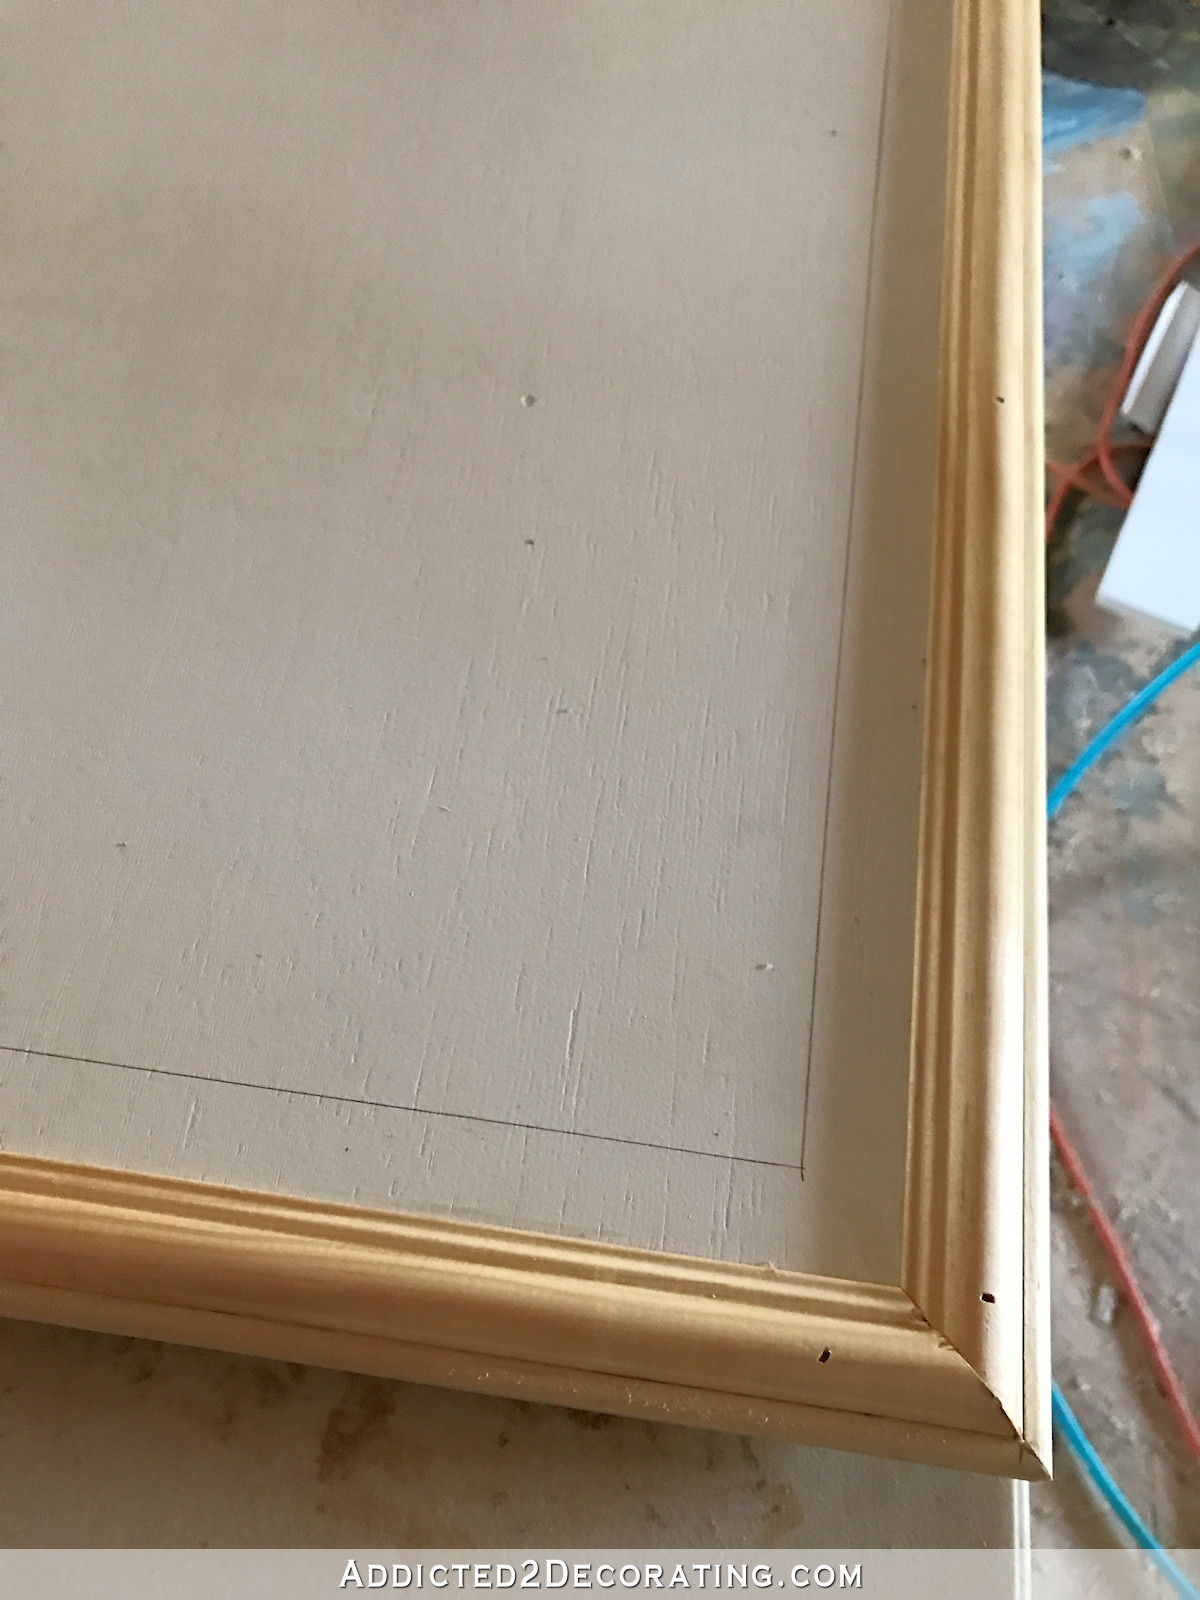 Best ideas about DIY Cabinet Doors . Save or Pin Simple DIY Cabinet Doors Make Cabinet Doors With Basic Now.